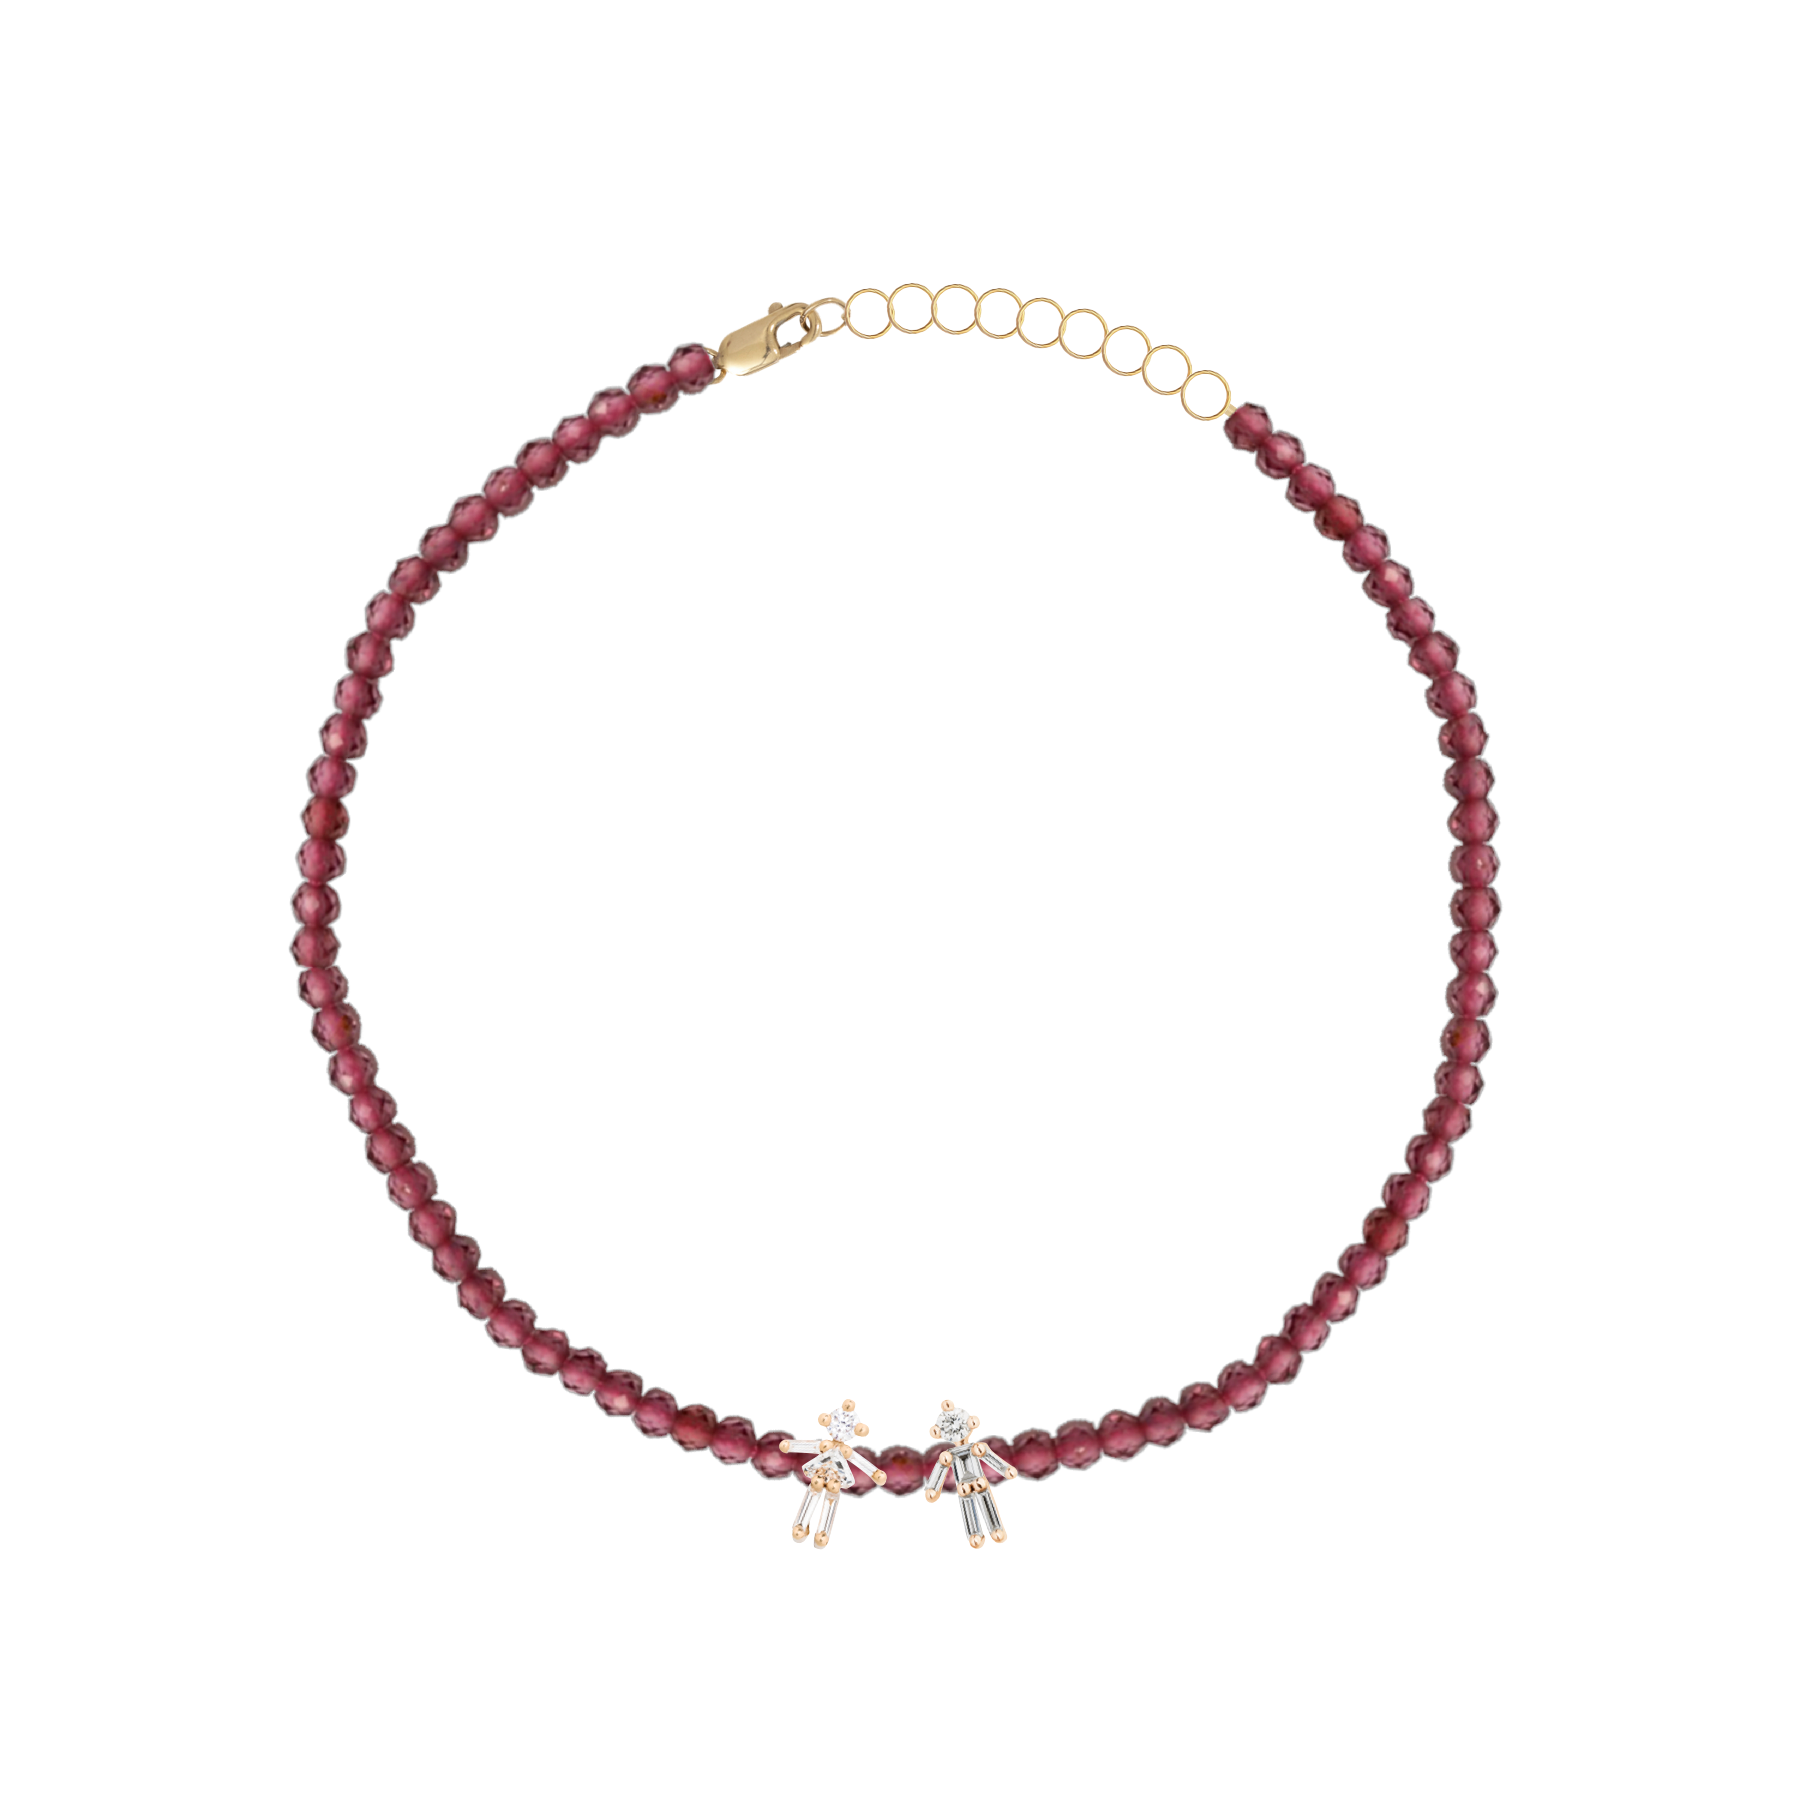 Bracelet rainbow double mixte or jaune / rose / blanc 18Kt et diamants